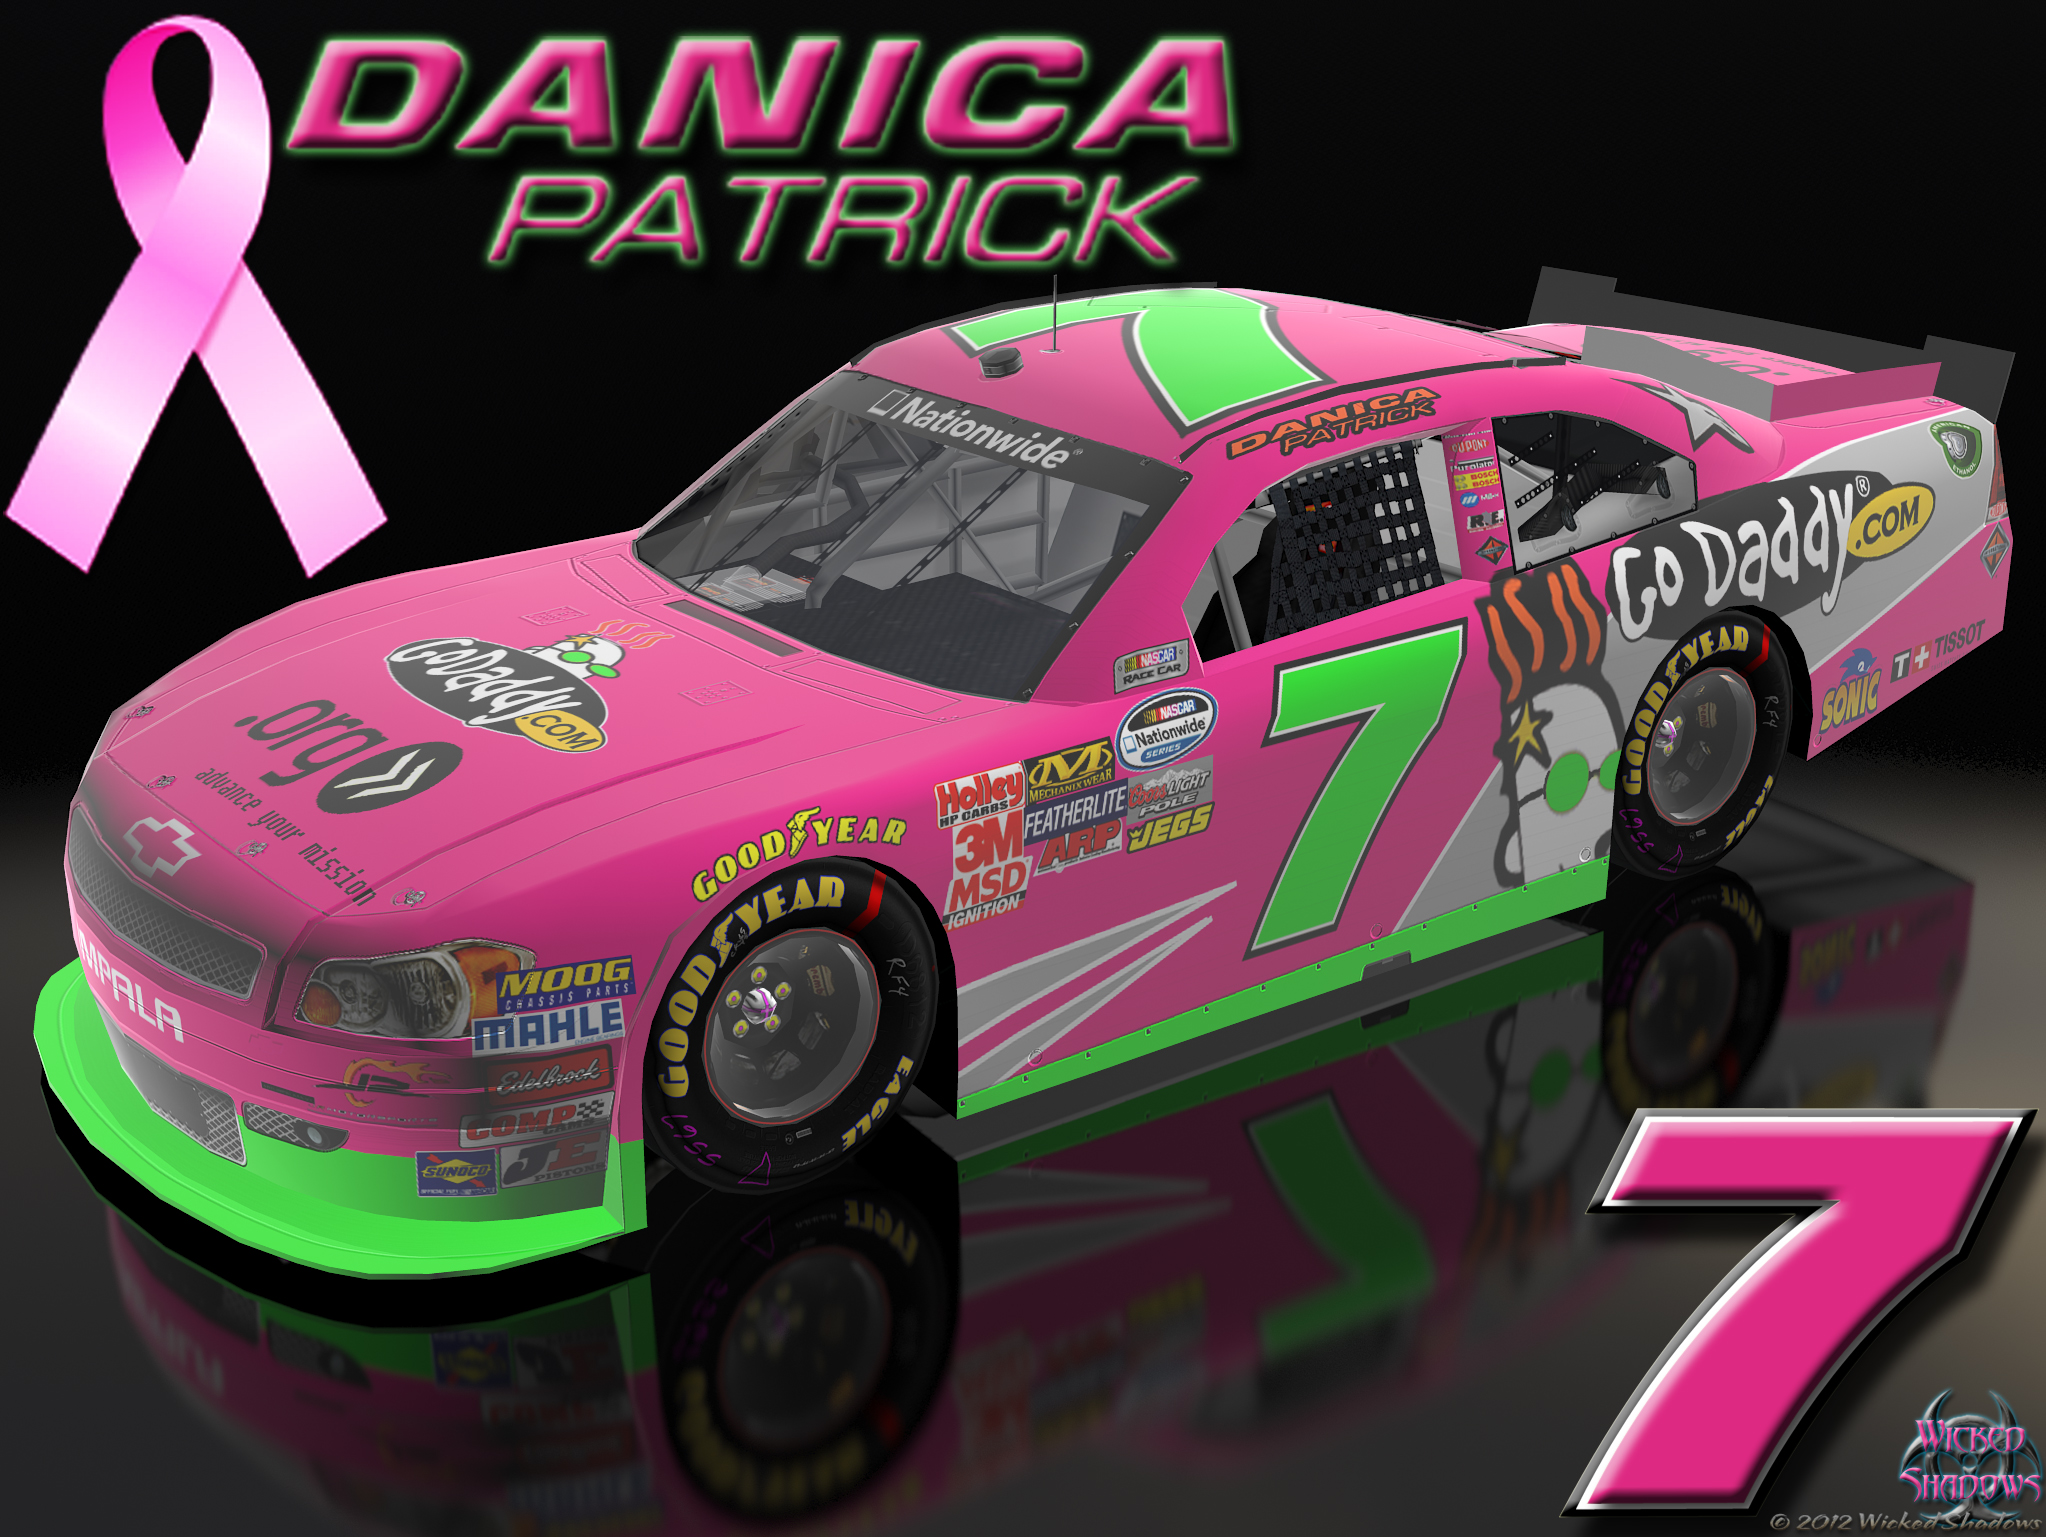 Wallpapers By Wicked Shadows Danica Patrick Dale: Danica Patrick Go Daddy Car